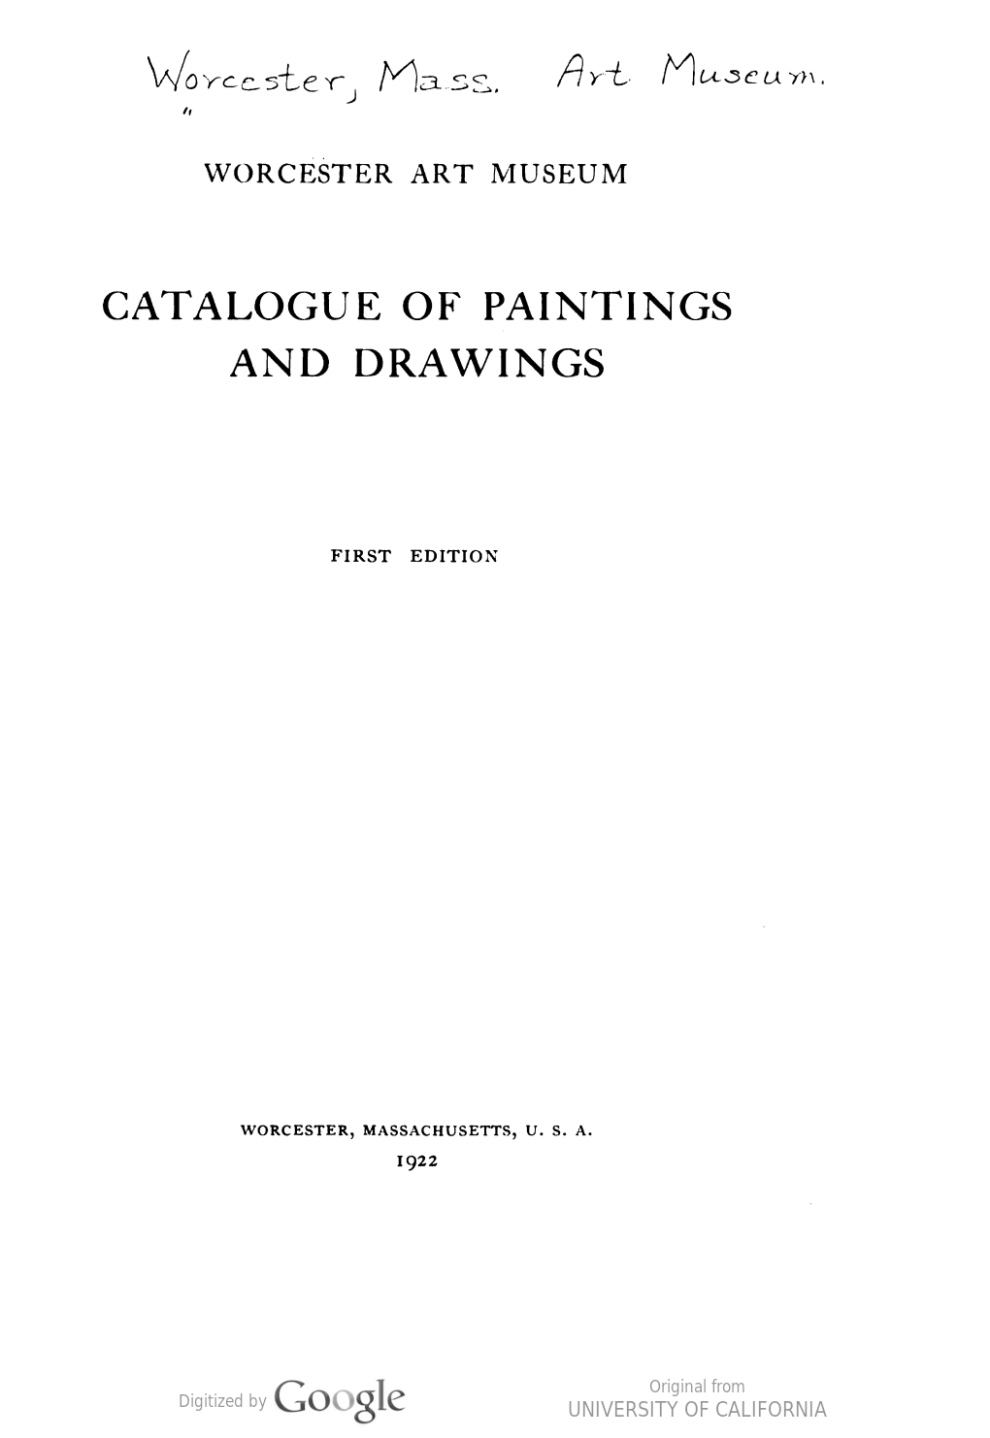 """Catalogue of Paintings and Drawings"" by Worcester Art Museum, Worcester, MA, First Edition, 1922"